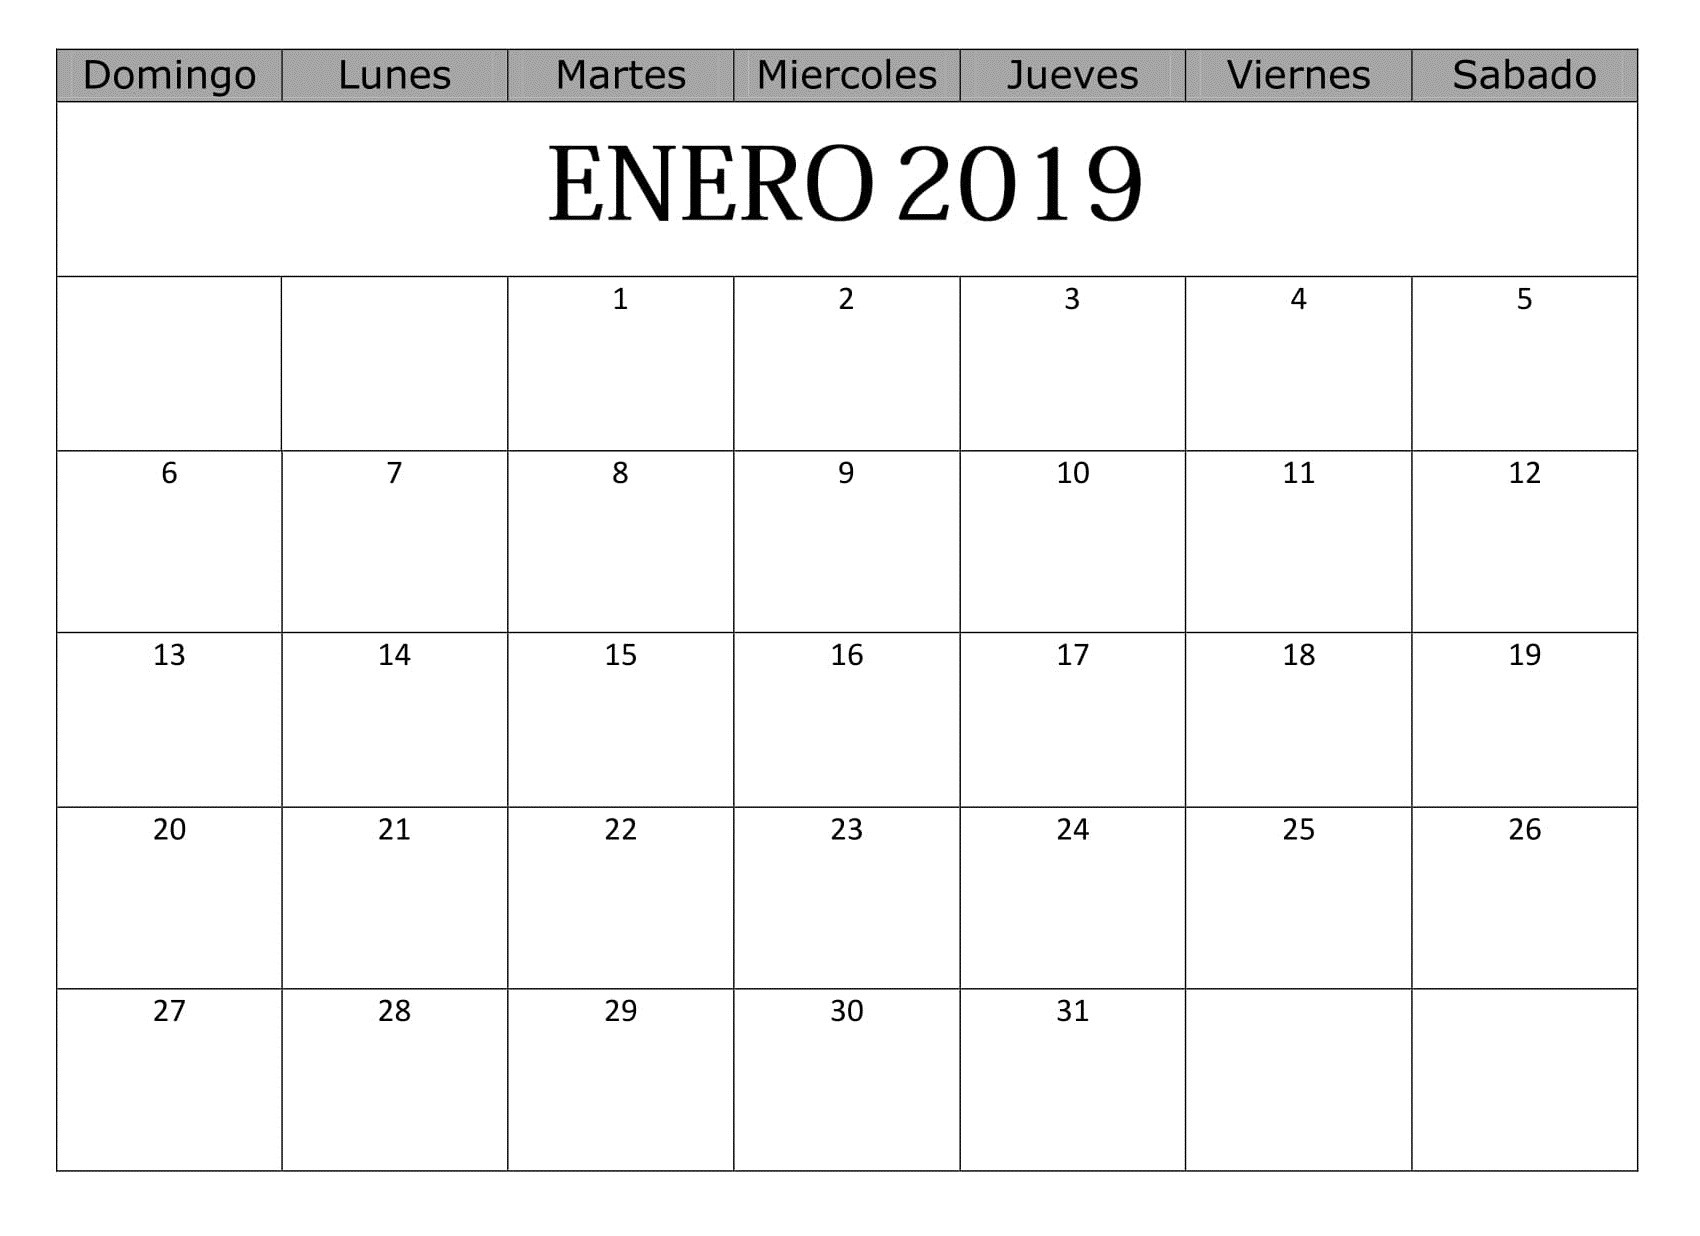 Calendario 2019 Para Descargar Más Populares Best Calendario Enero 2019 Para Imprimir Gratis Image Collection Of Calendario 2019 Para Descargar Más Caliente Calendario Dr 2019 Calendario 2019